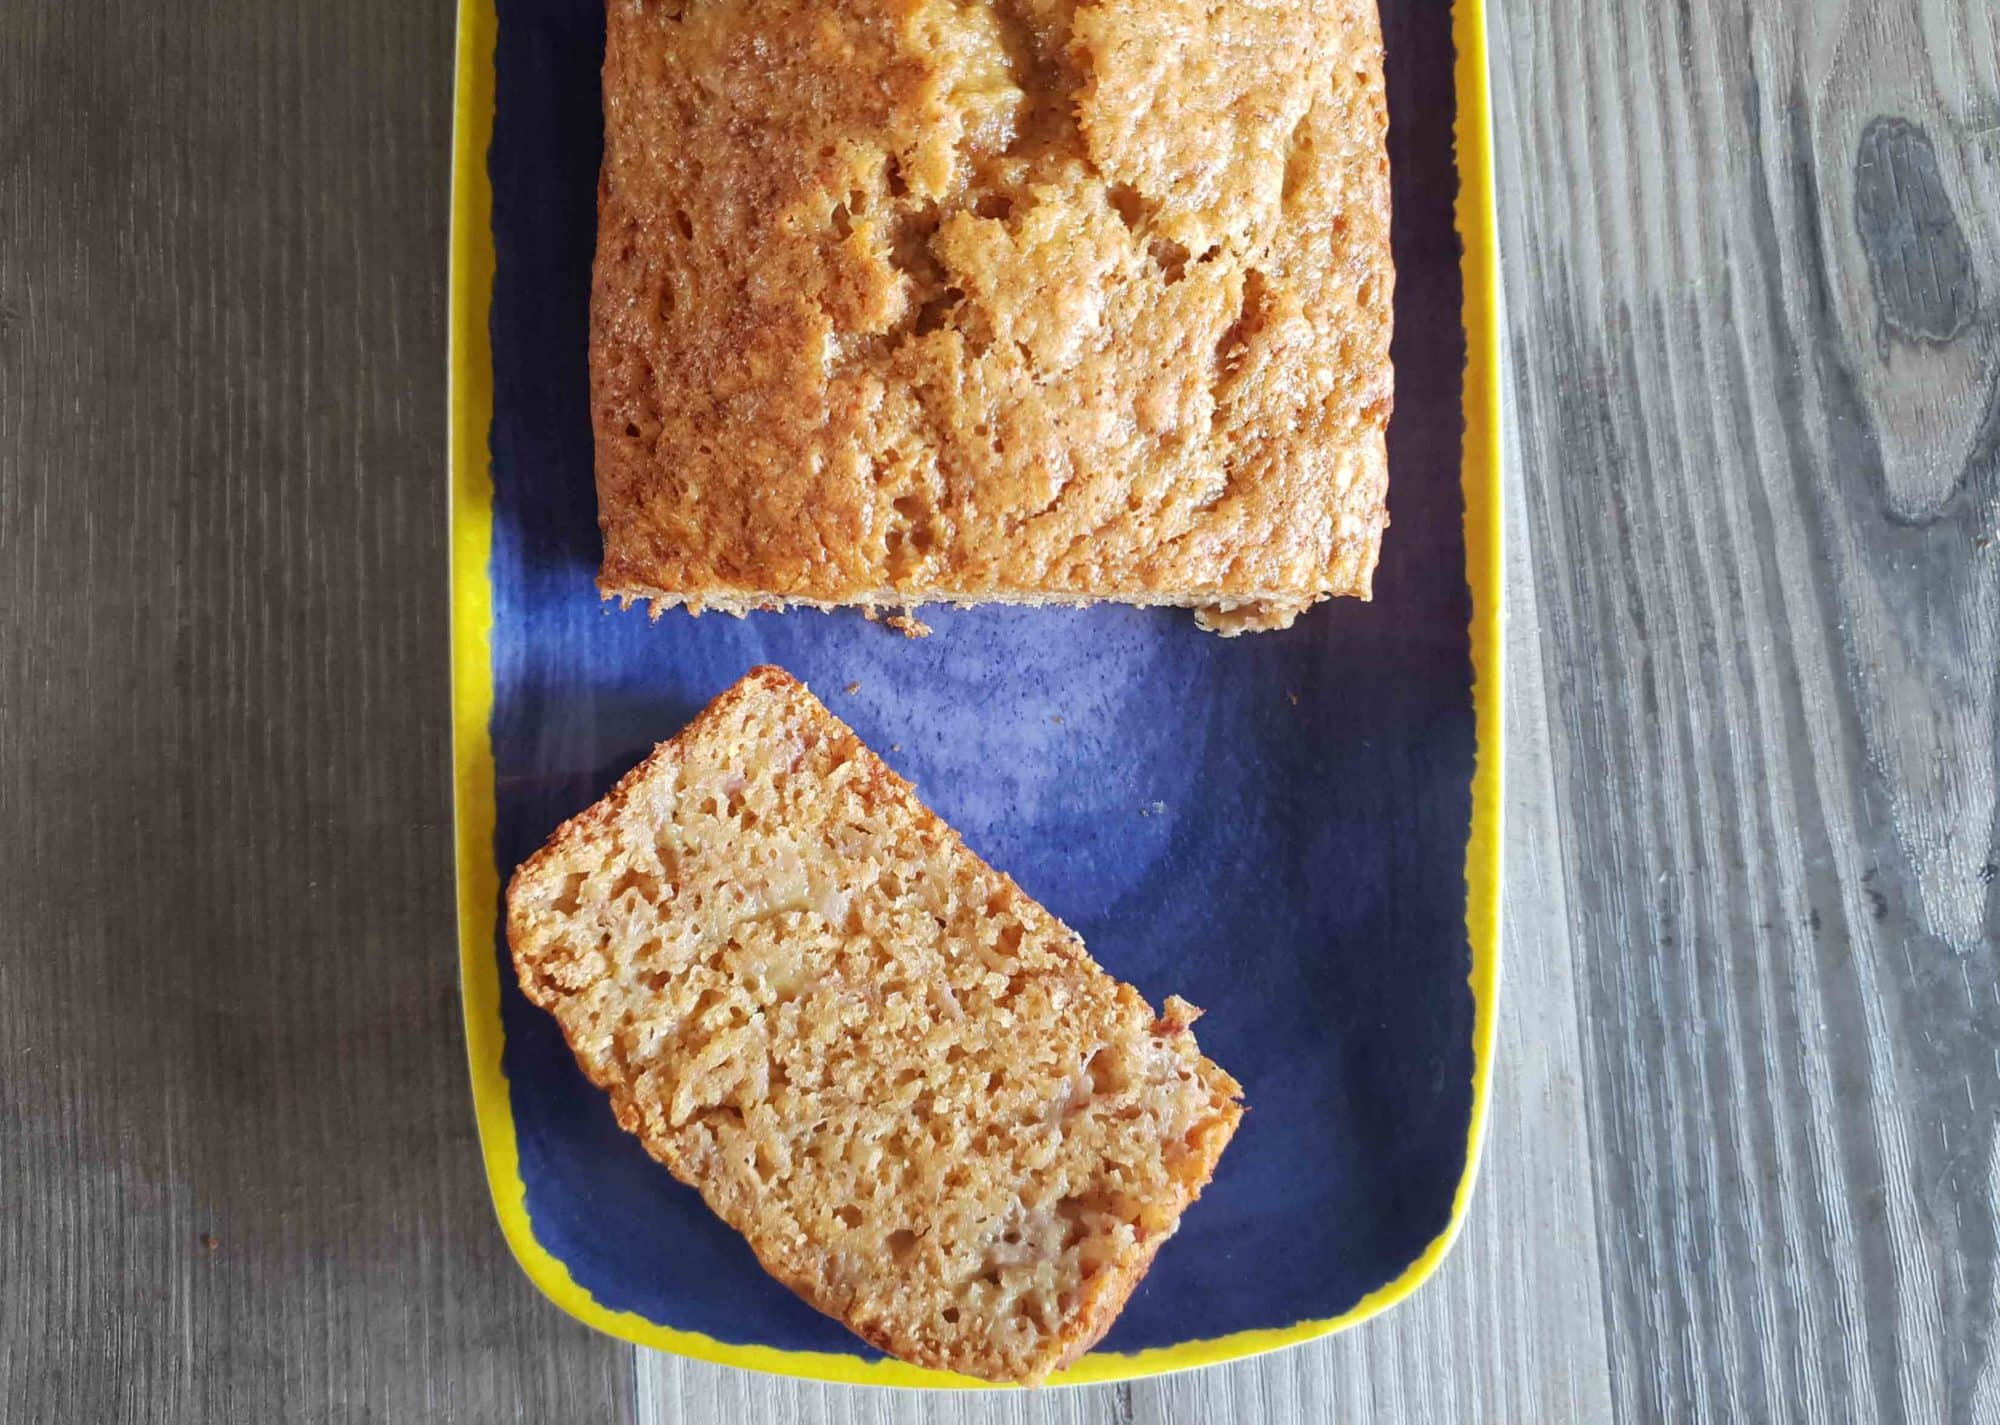 Spicy Banana Bread